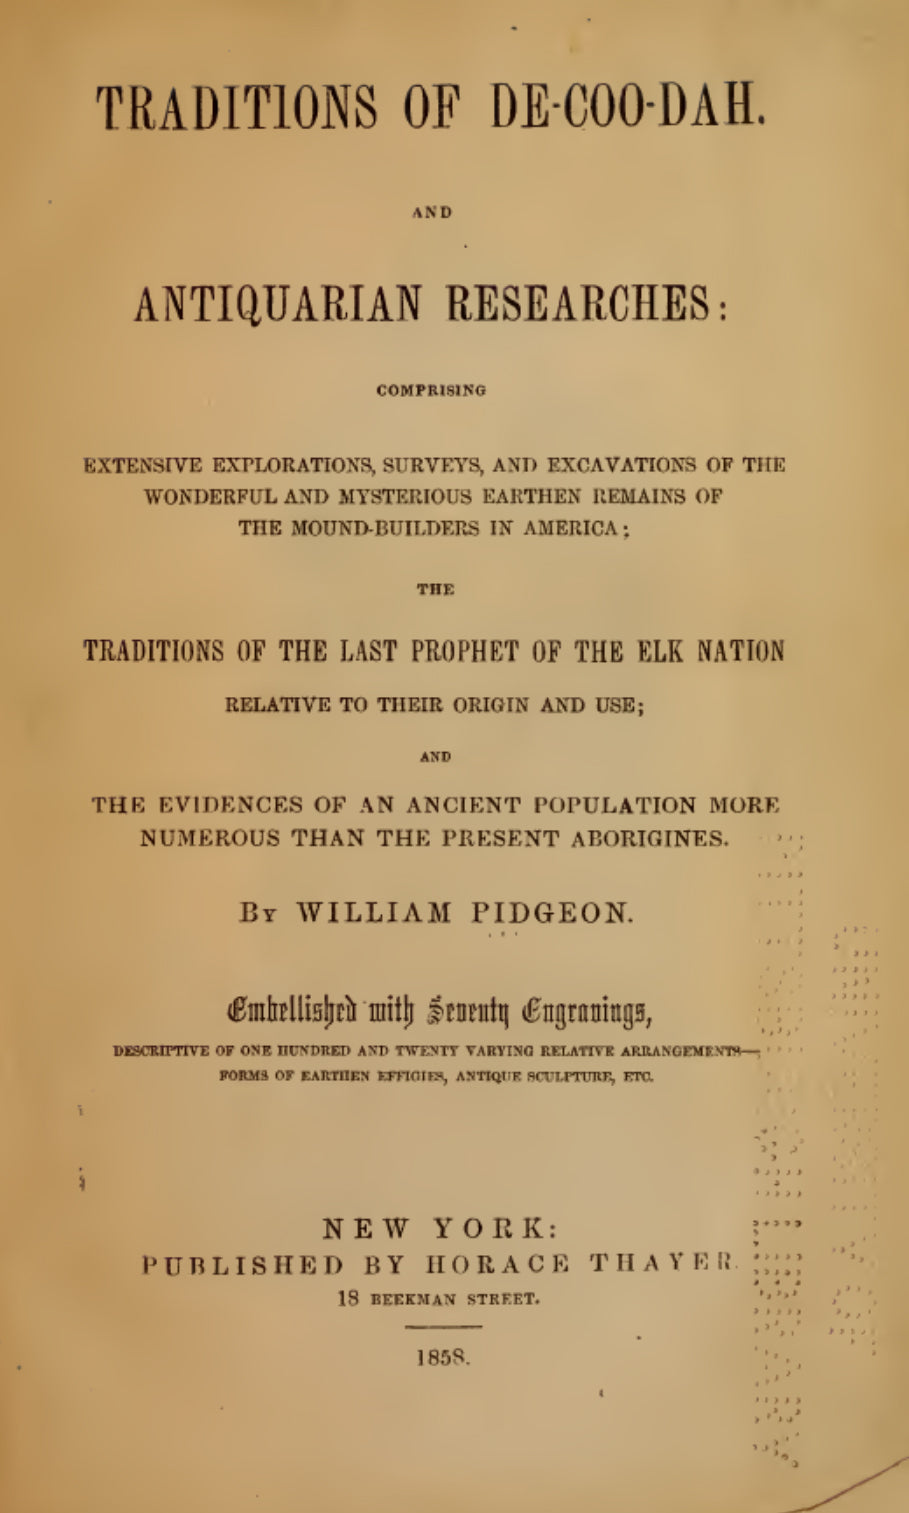 1858 Traditions of De-Coo-Dah and antiquarian researches